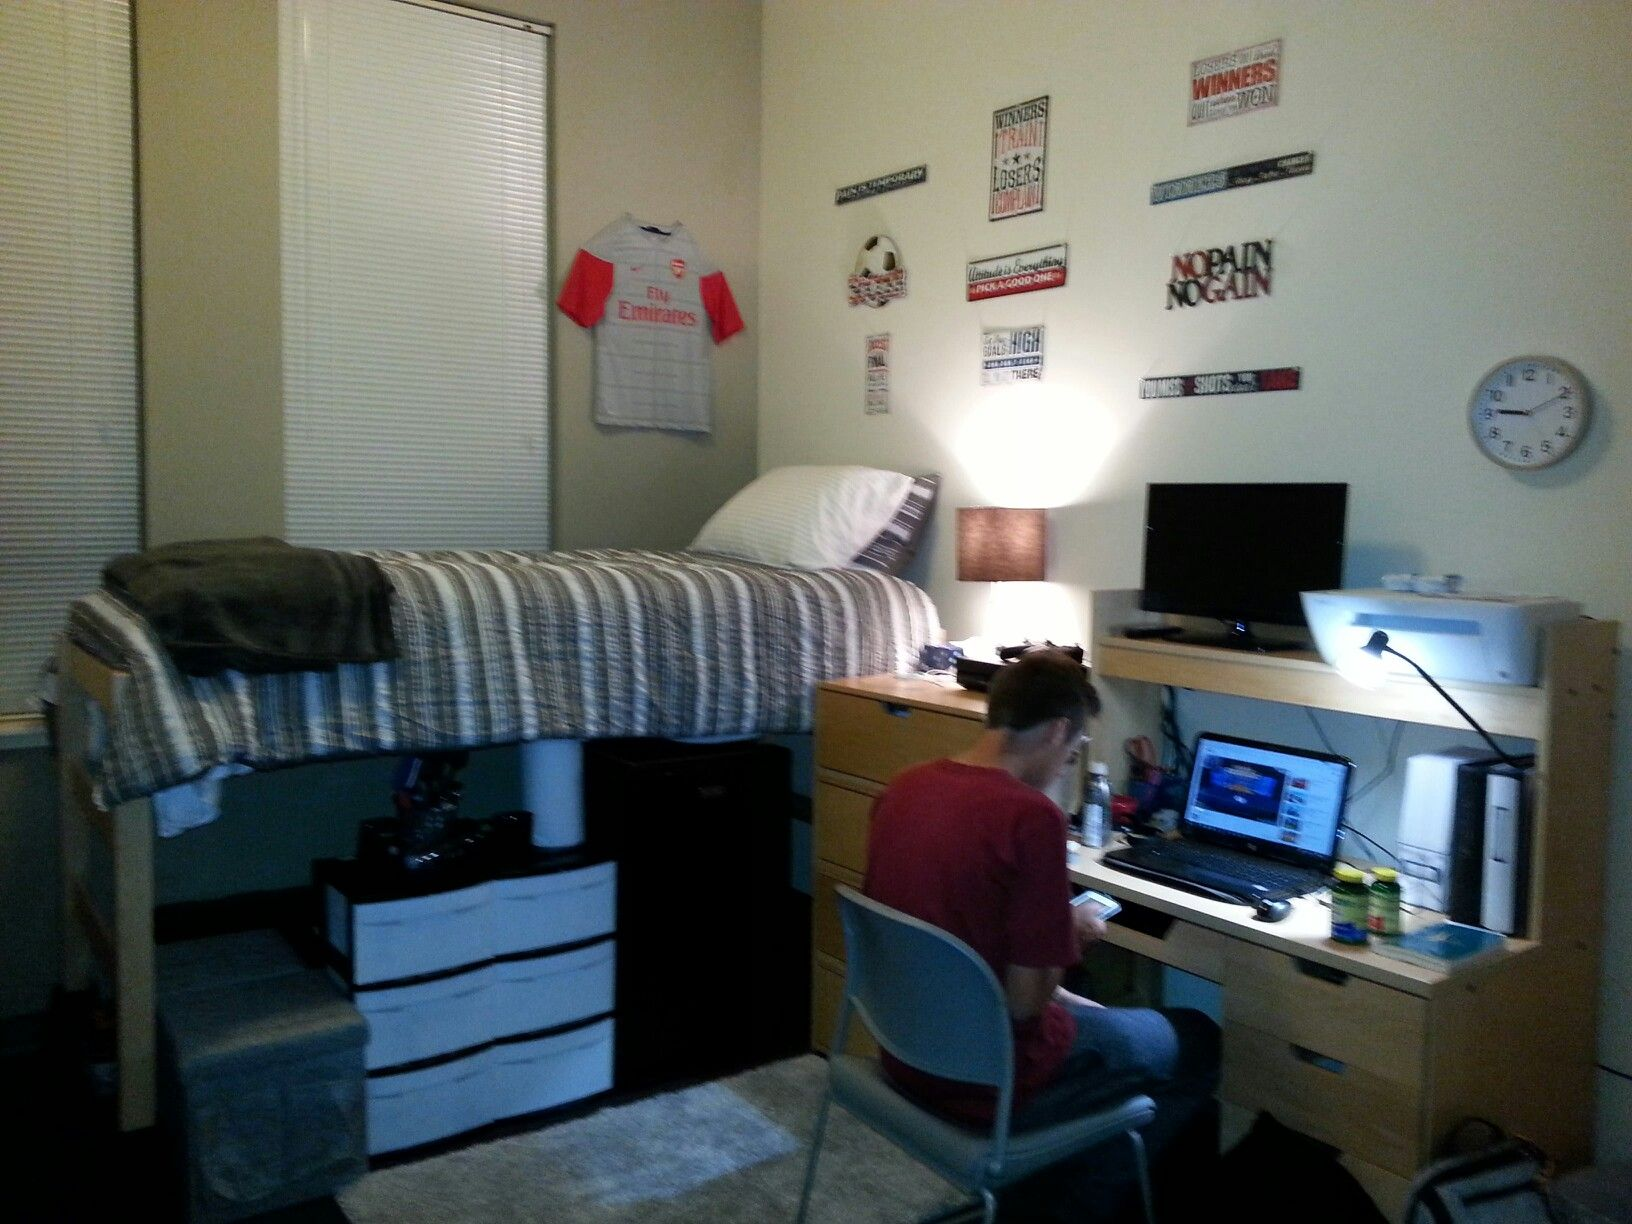 best 25+ guy dorm ideas on pinterest | guys college dorms, guy